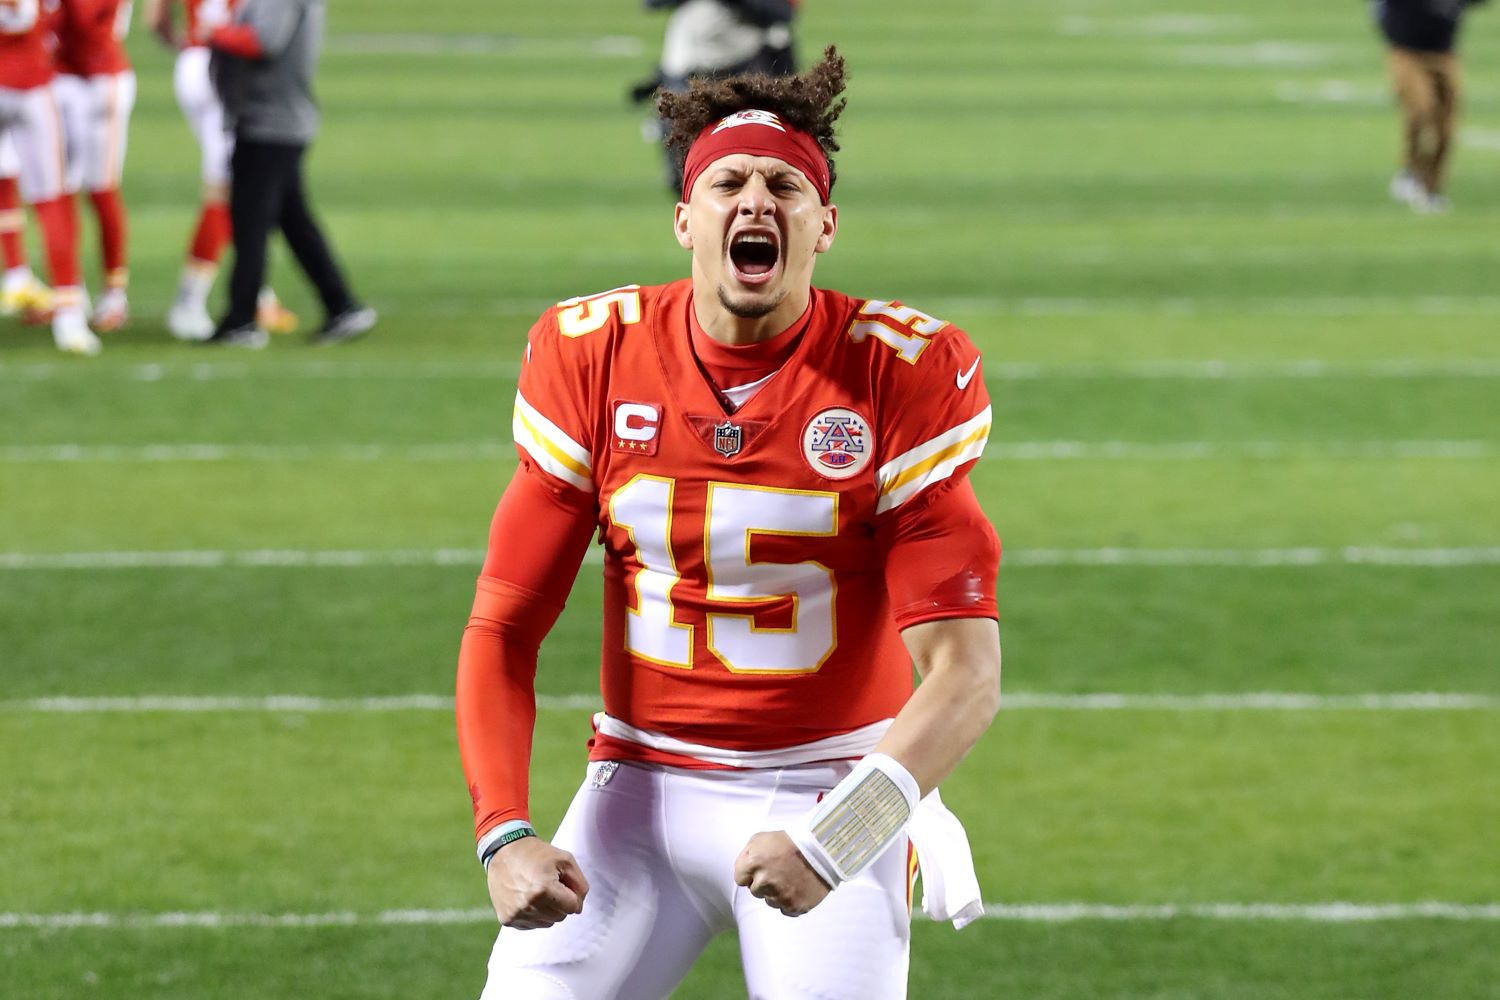 Patrick Mahomes provided a significant update on Tuesday about his nagging toe injury that could threaten the Chiefs' Super Bowl chances.